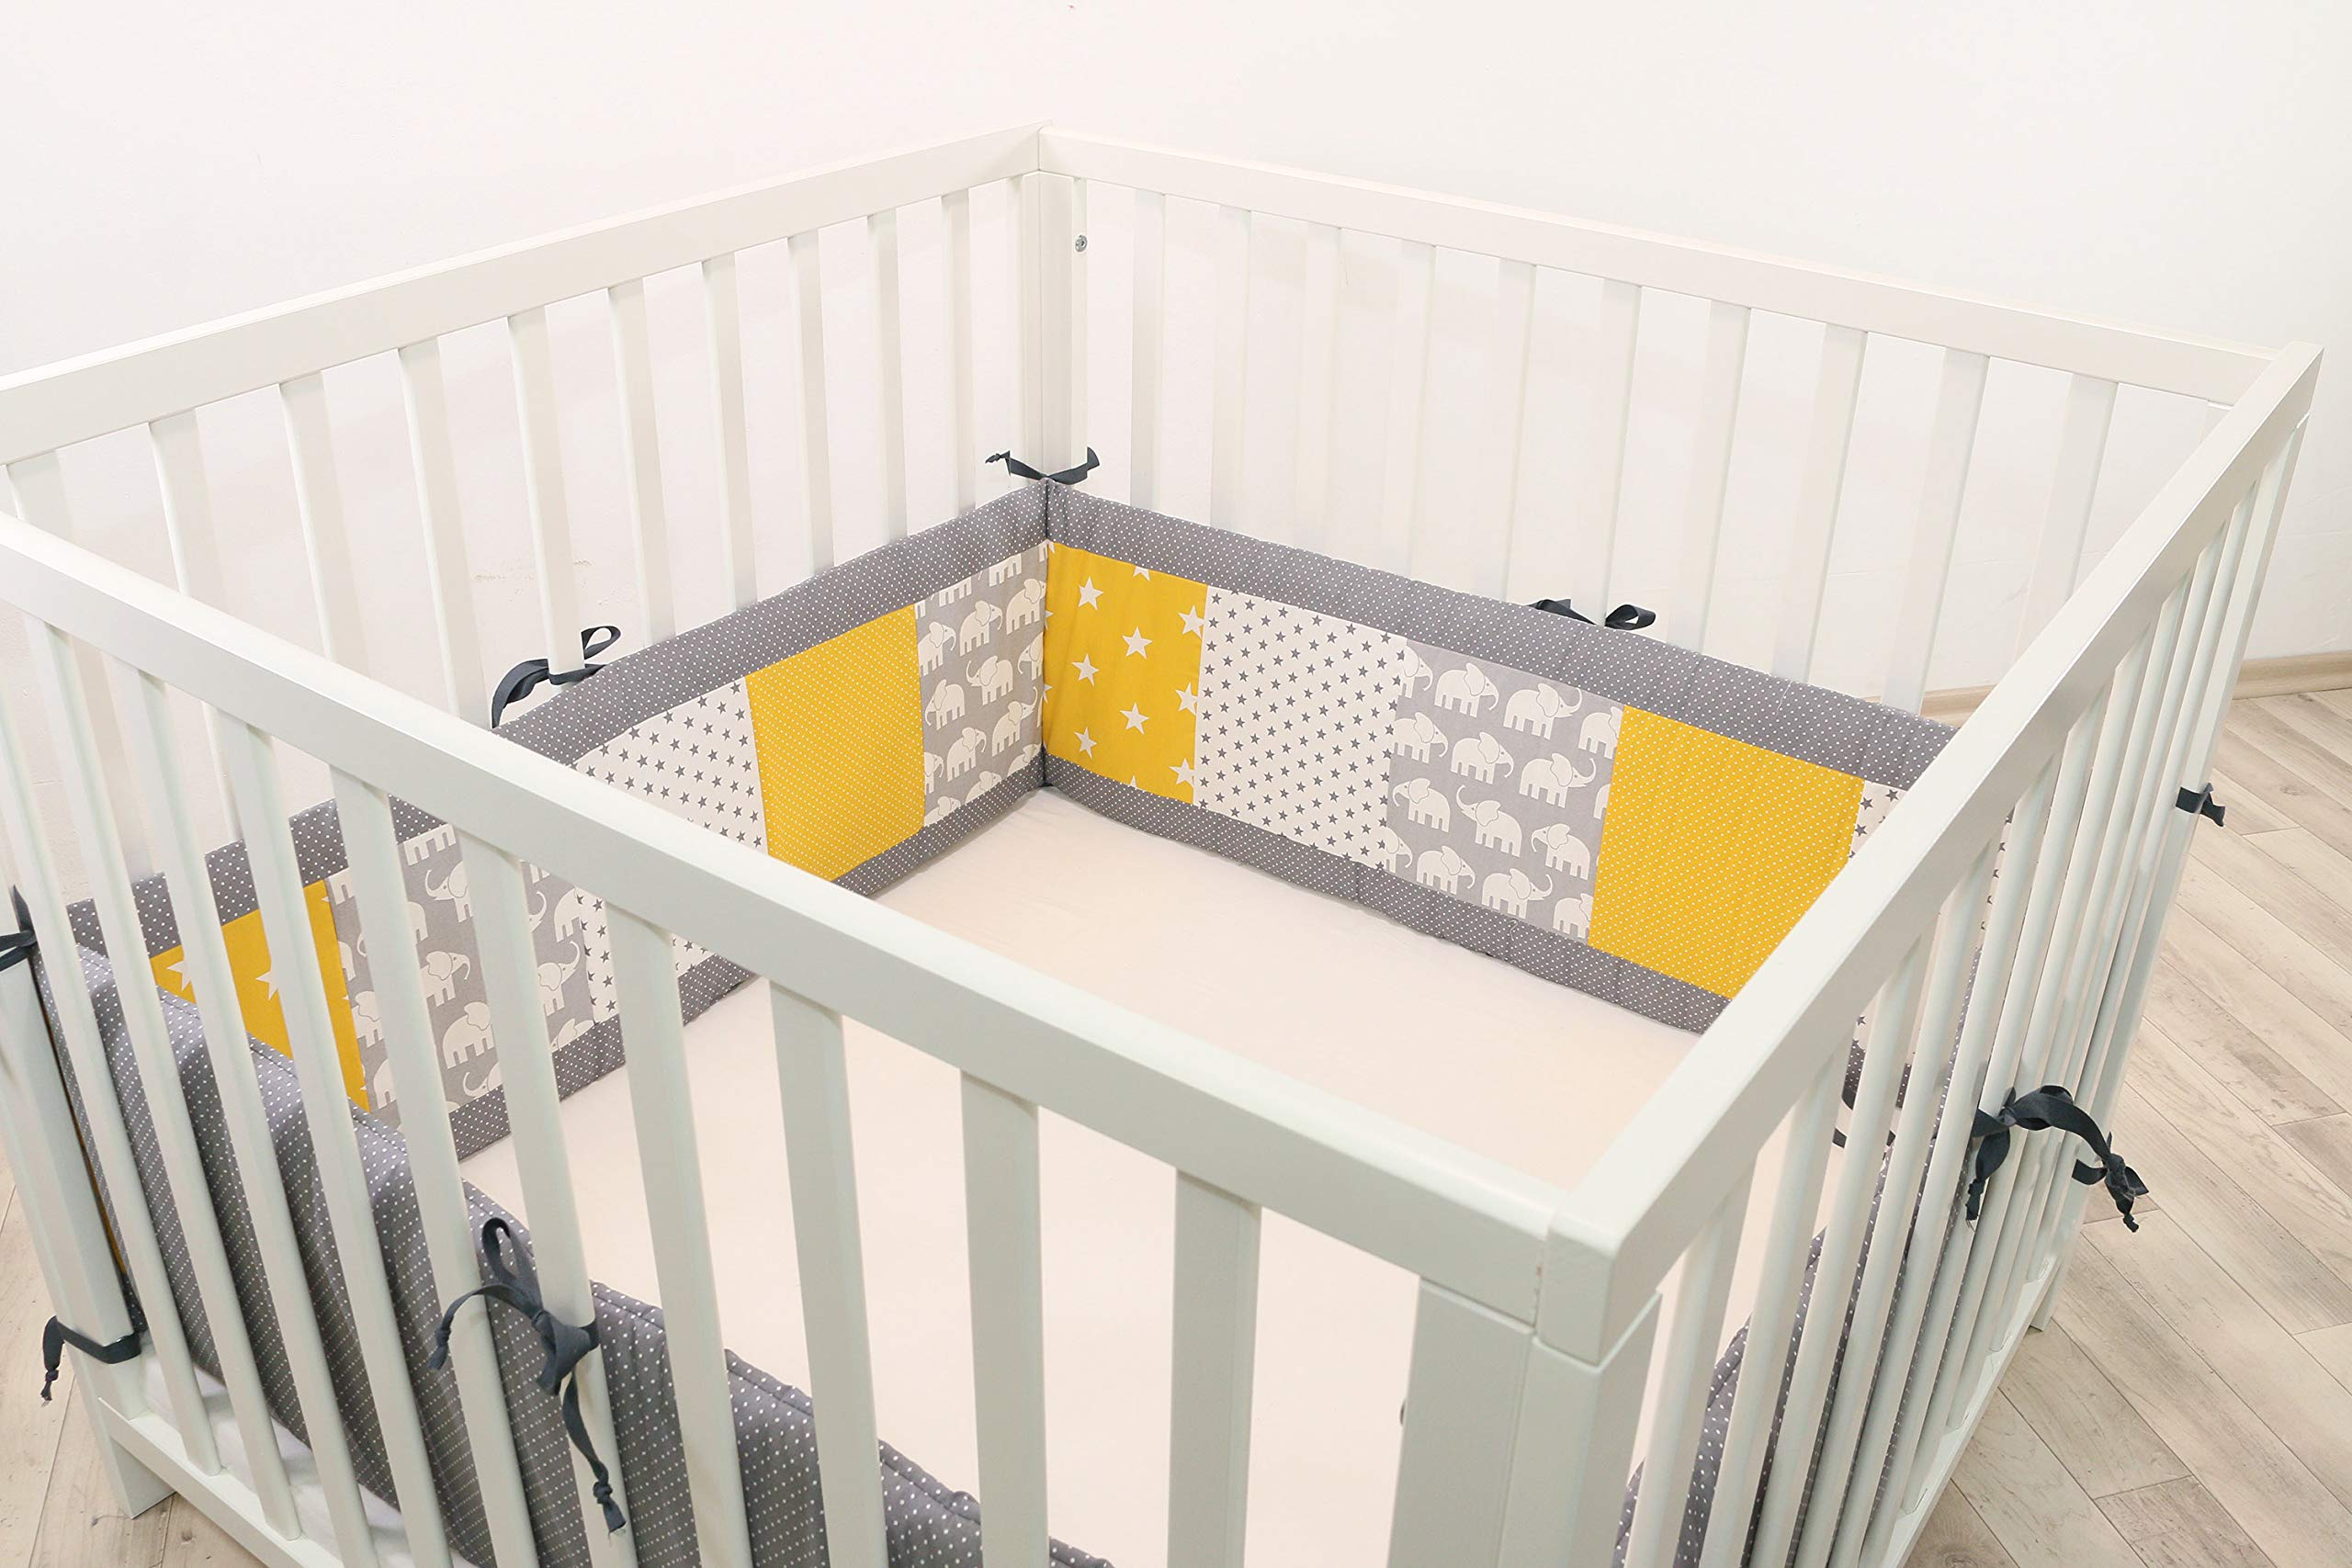 ULLENBOOM® Bumper- Yellow Elephants (400x 30cm Baby playpen Bumper, Full Surround Bumper Pads for 100x 100cm playpen) ULLENBOOM This 400x 30cm patchwork bumper serves as a protective insert and surround for 100x 100cm playpens, to provide babies with protection- especially head protection- from playpen bars The sizes 200x 30cm and 400x 30cm (full surround) are for playpens- the 'full surround' bumper comes in two sections. ULLENBOOM also offers additional sizes for 140x 70cm and 120x 60cm cots These bumpers can be washed at 30 °C and the materials used are certified according to the Oeko-Tex standard (tested for harmful substances, hypoallergenic); smooth outer fabric: 100% cotton (Oeko-Tex); soft, thick wadding: 100% polyester (Oeko-Tex) 1